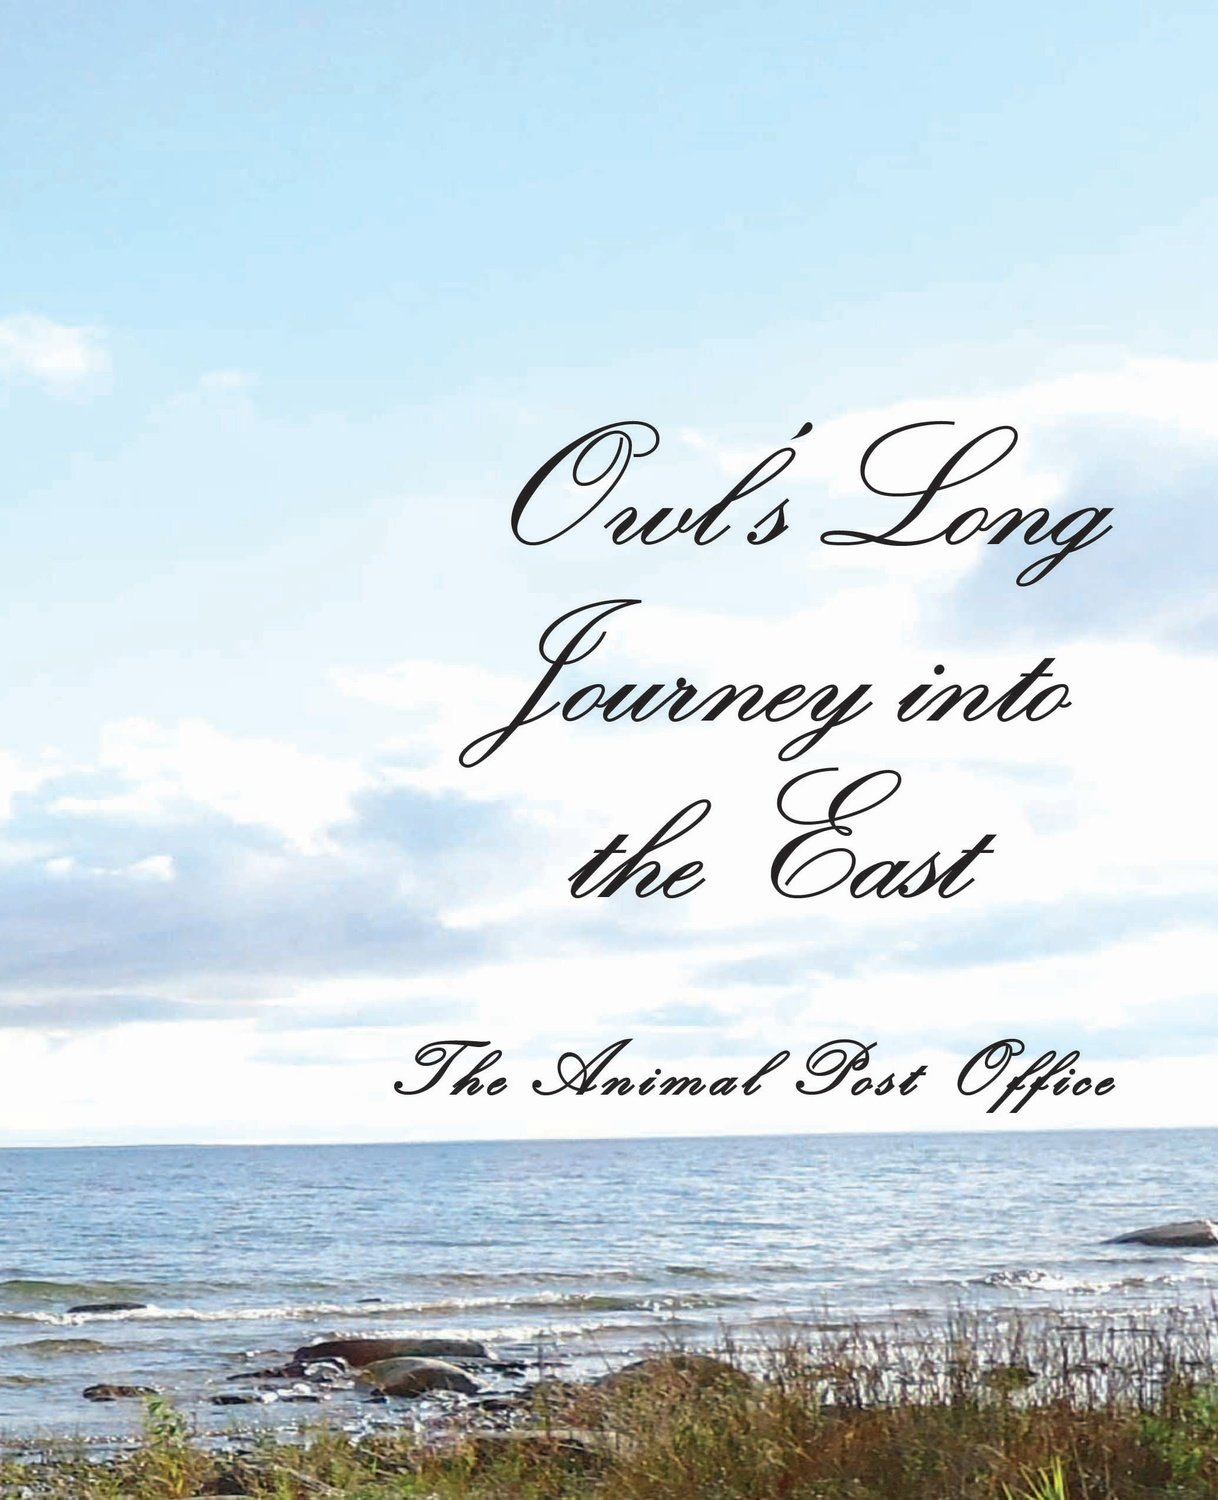 The Animal Post Office - Owl's Long Journey into the East (Coming)